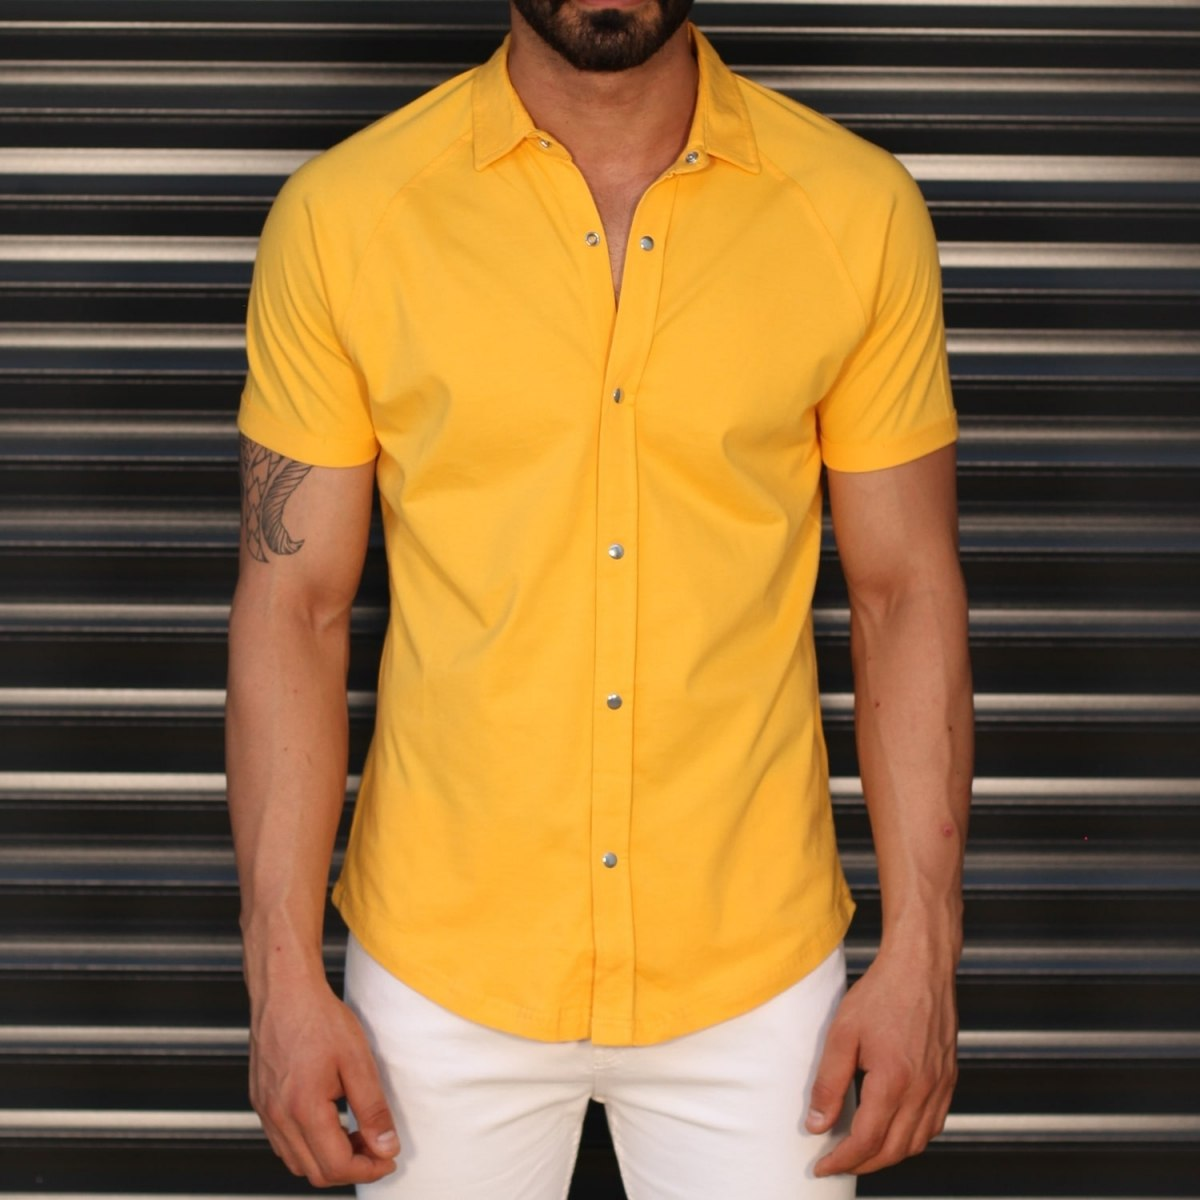 Men's Button Short Sleeve Muscle Fit Shirt In Yellow